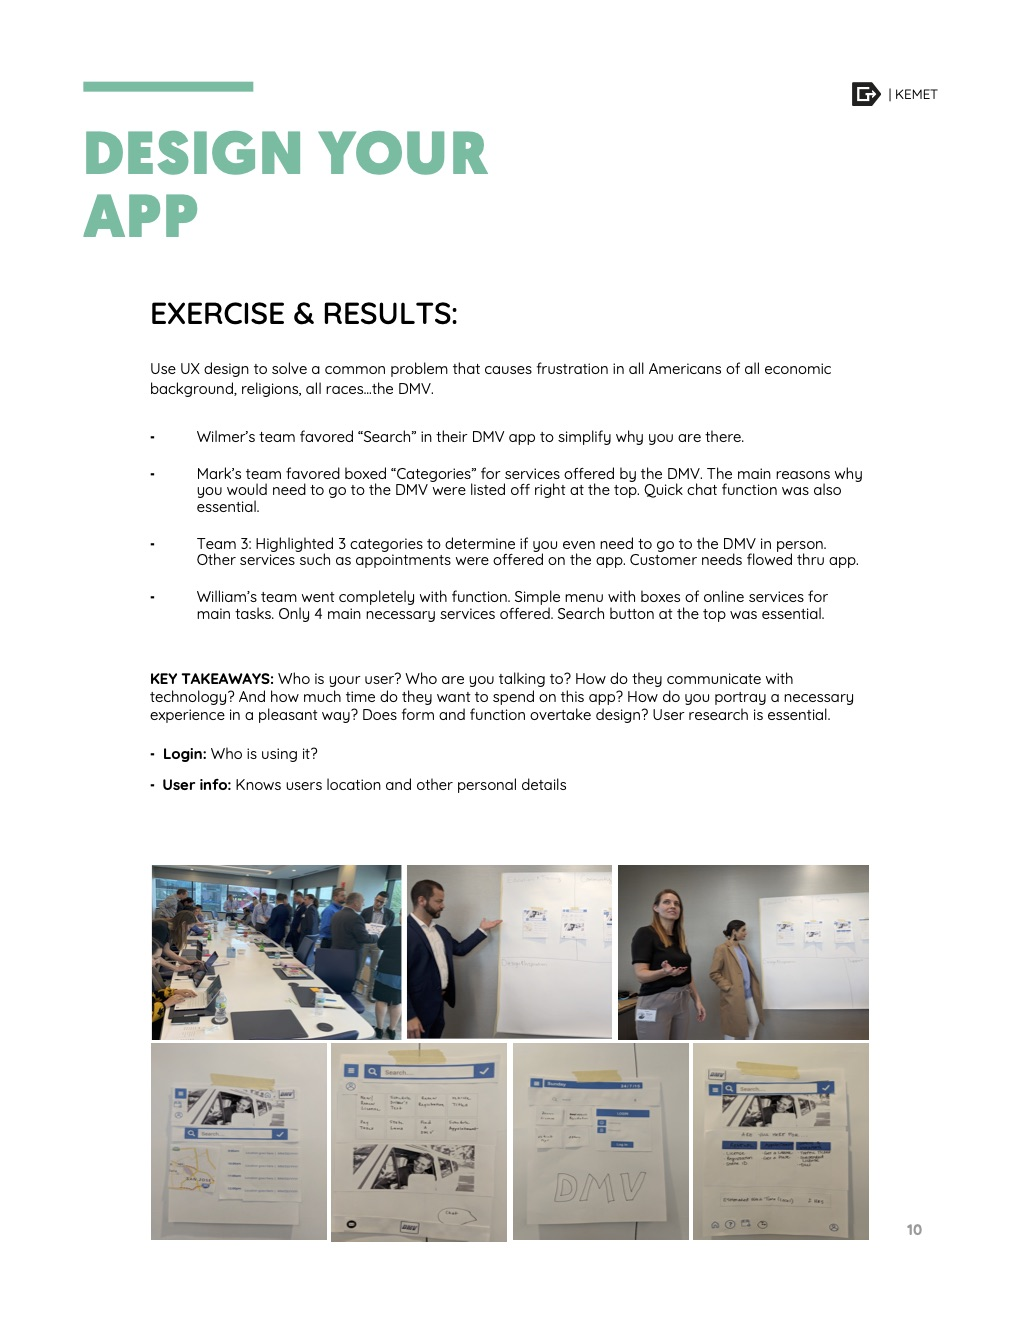 Tips on how to best design the new app with photos of the team during the exercise.